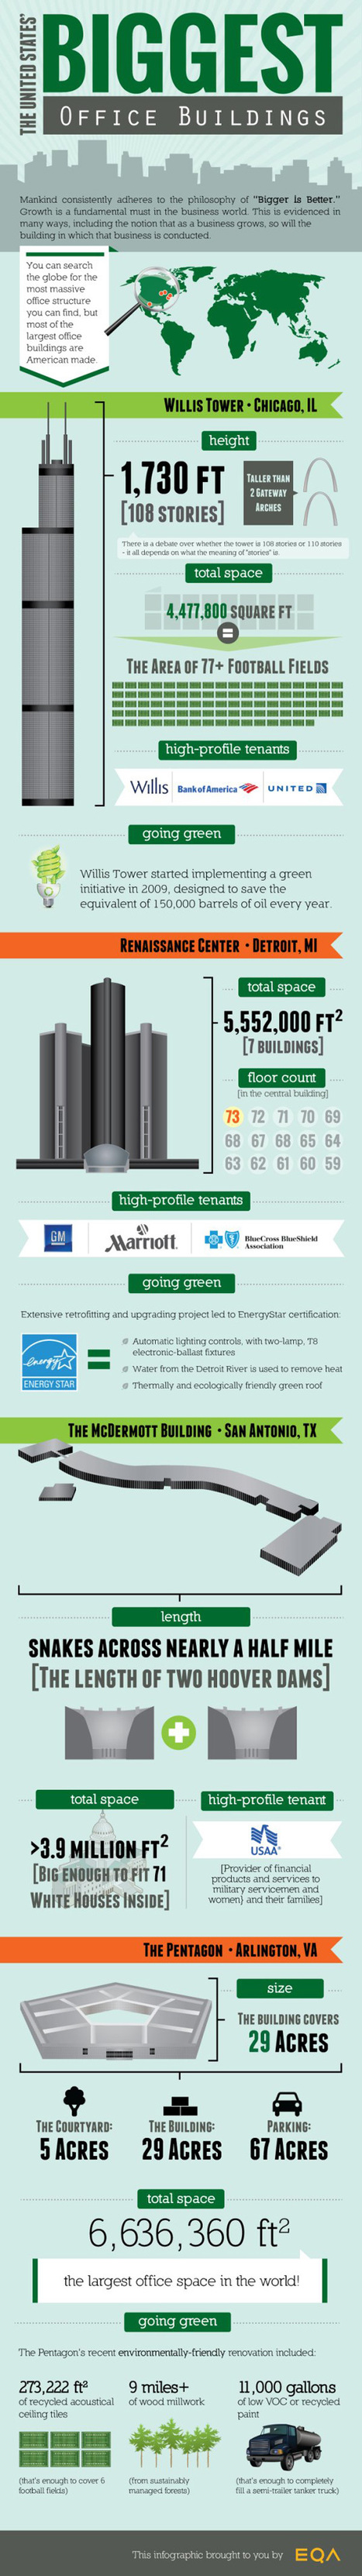 Greenest Office Buildings in USA | Ecoarea Better Living | Scoop.it